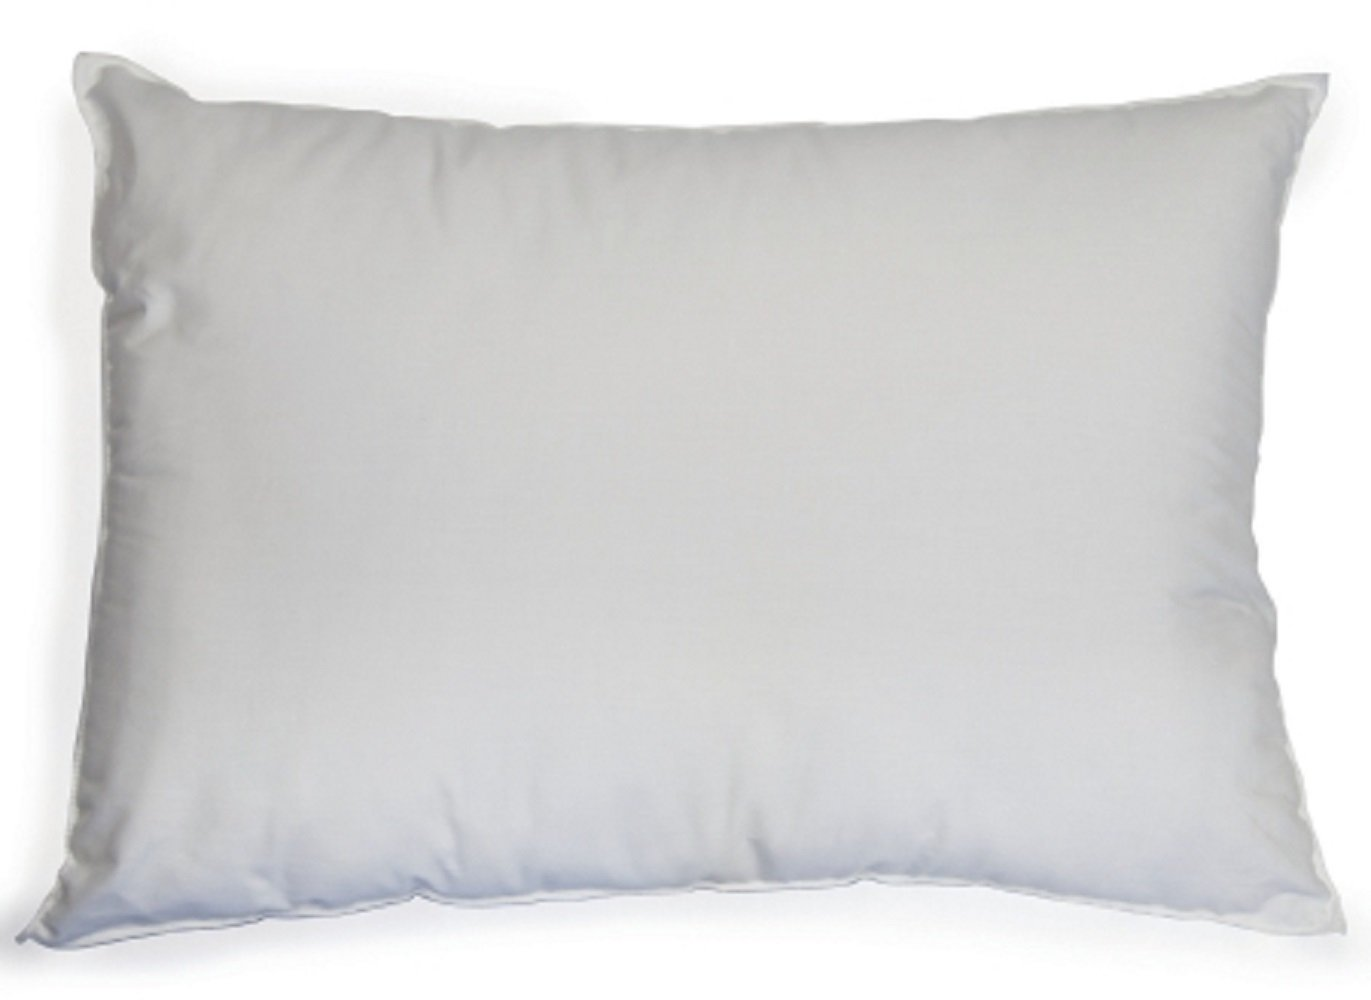 McKesson - Bed Pillow - 21 X 27 Inch - White Reusable - 12/Case - McK